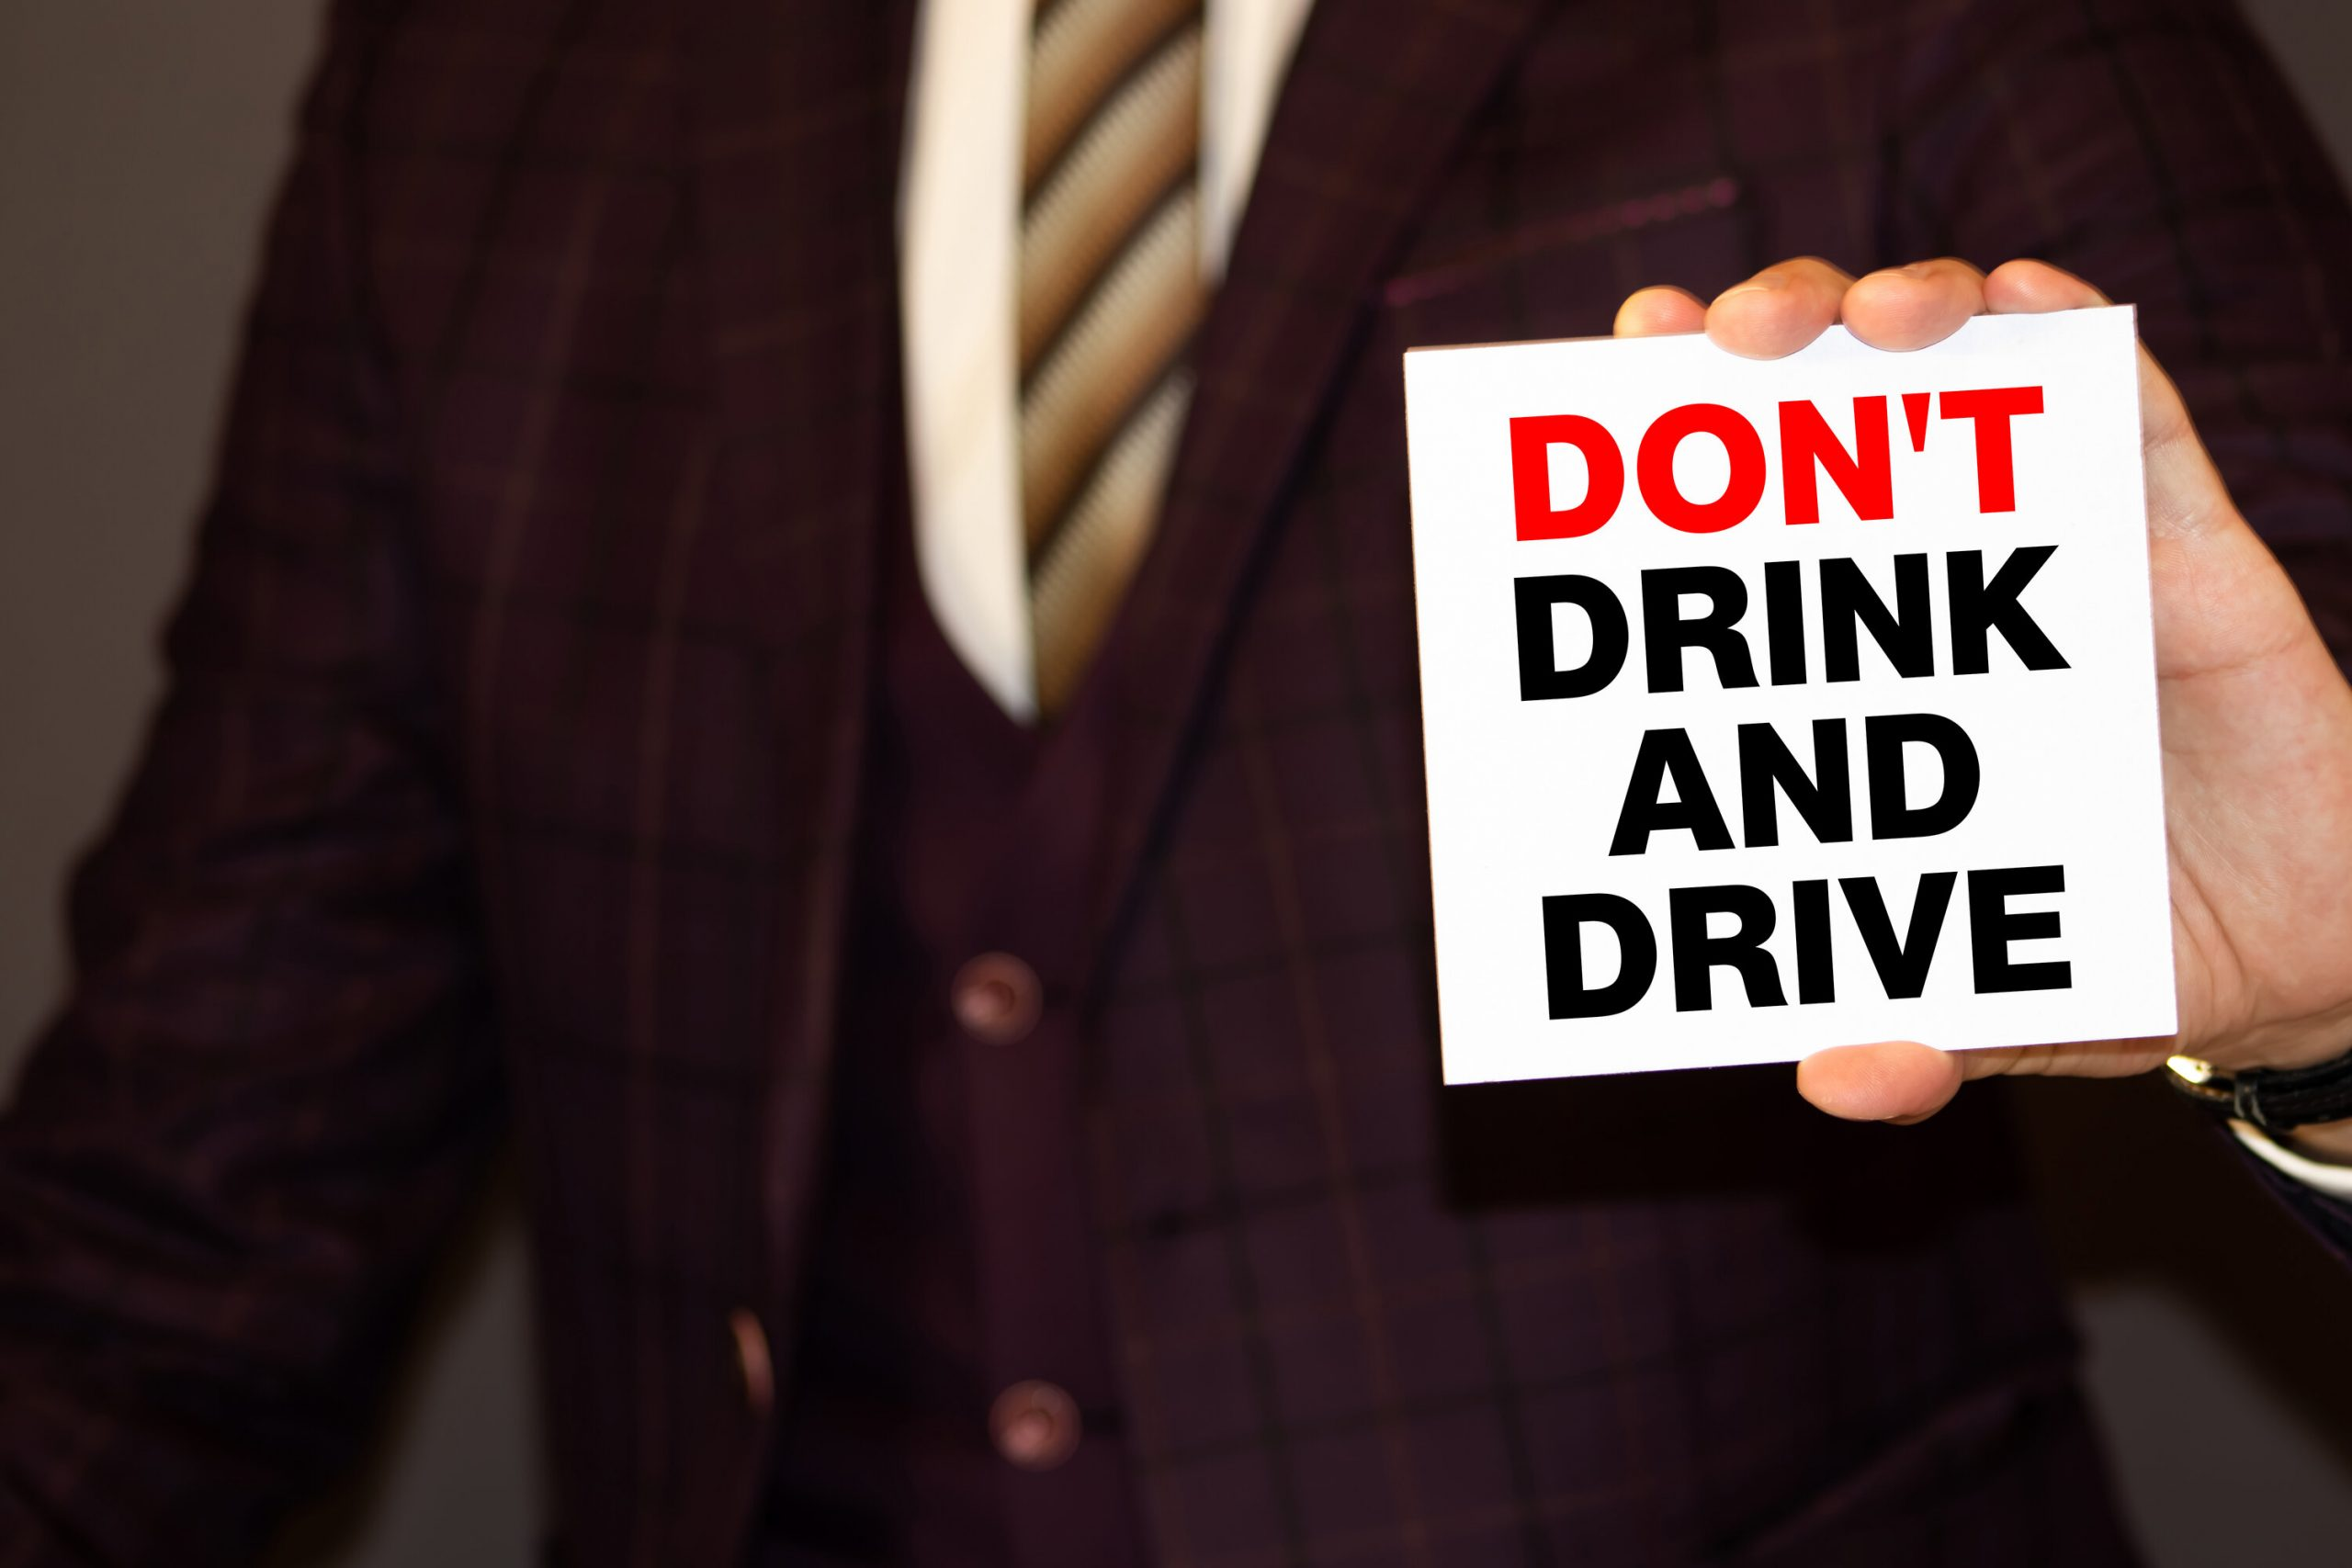 Aggravated DUI § 28-1383 - Don't Drink and Drive